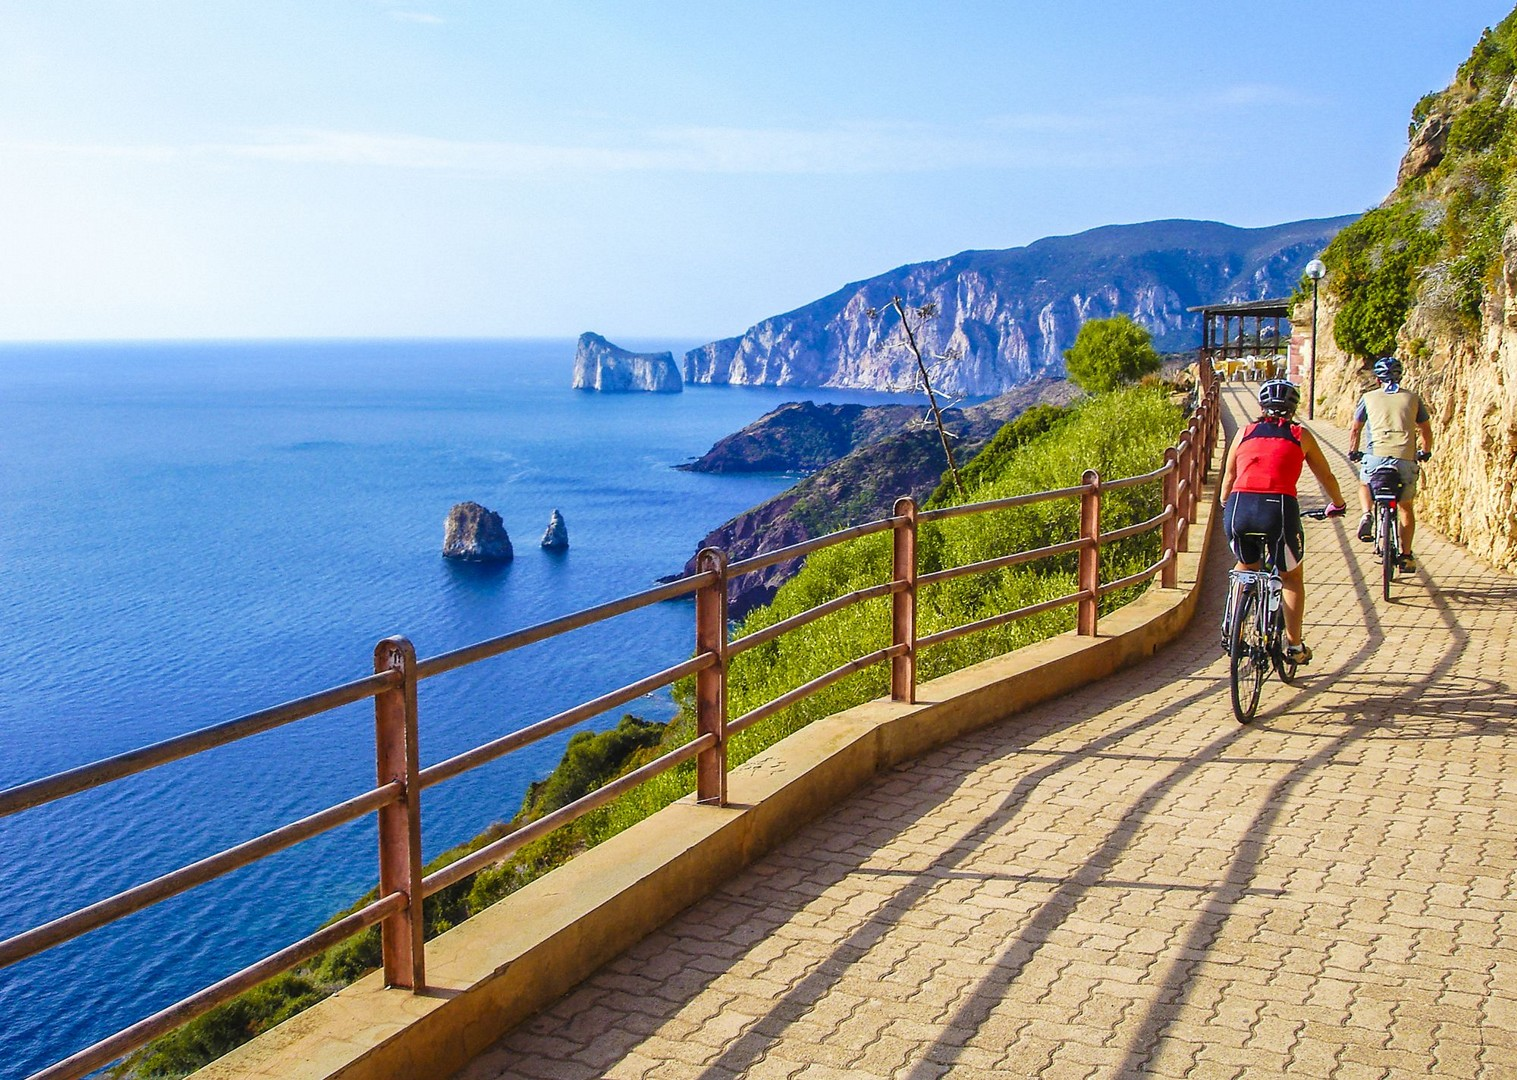 cycling-in-sardinia-italy-self-guided-trip-with-saddle-skedaddle.jpg - Italy - Sardinia - Island Flavours - Self-Guided Leisure Cycling Holiday - Italia Leisure and Family Cycling